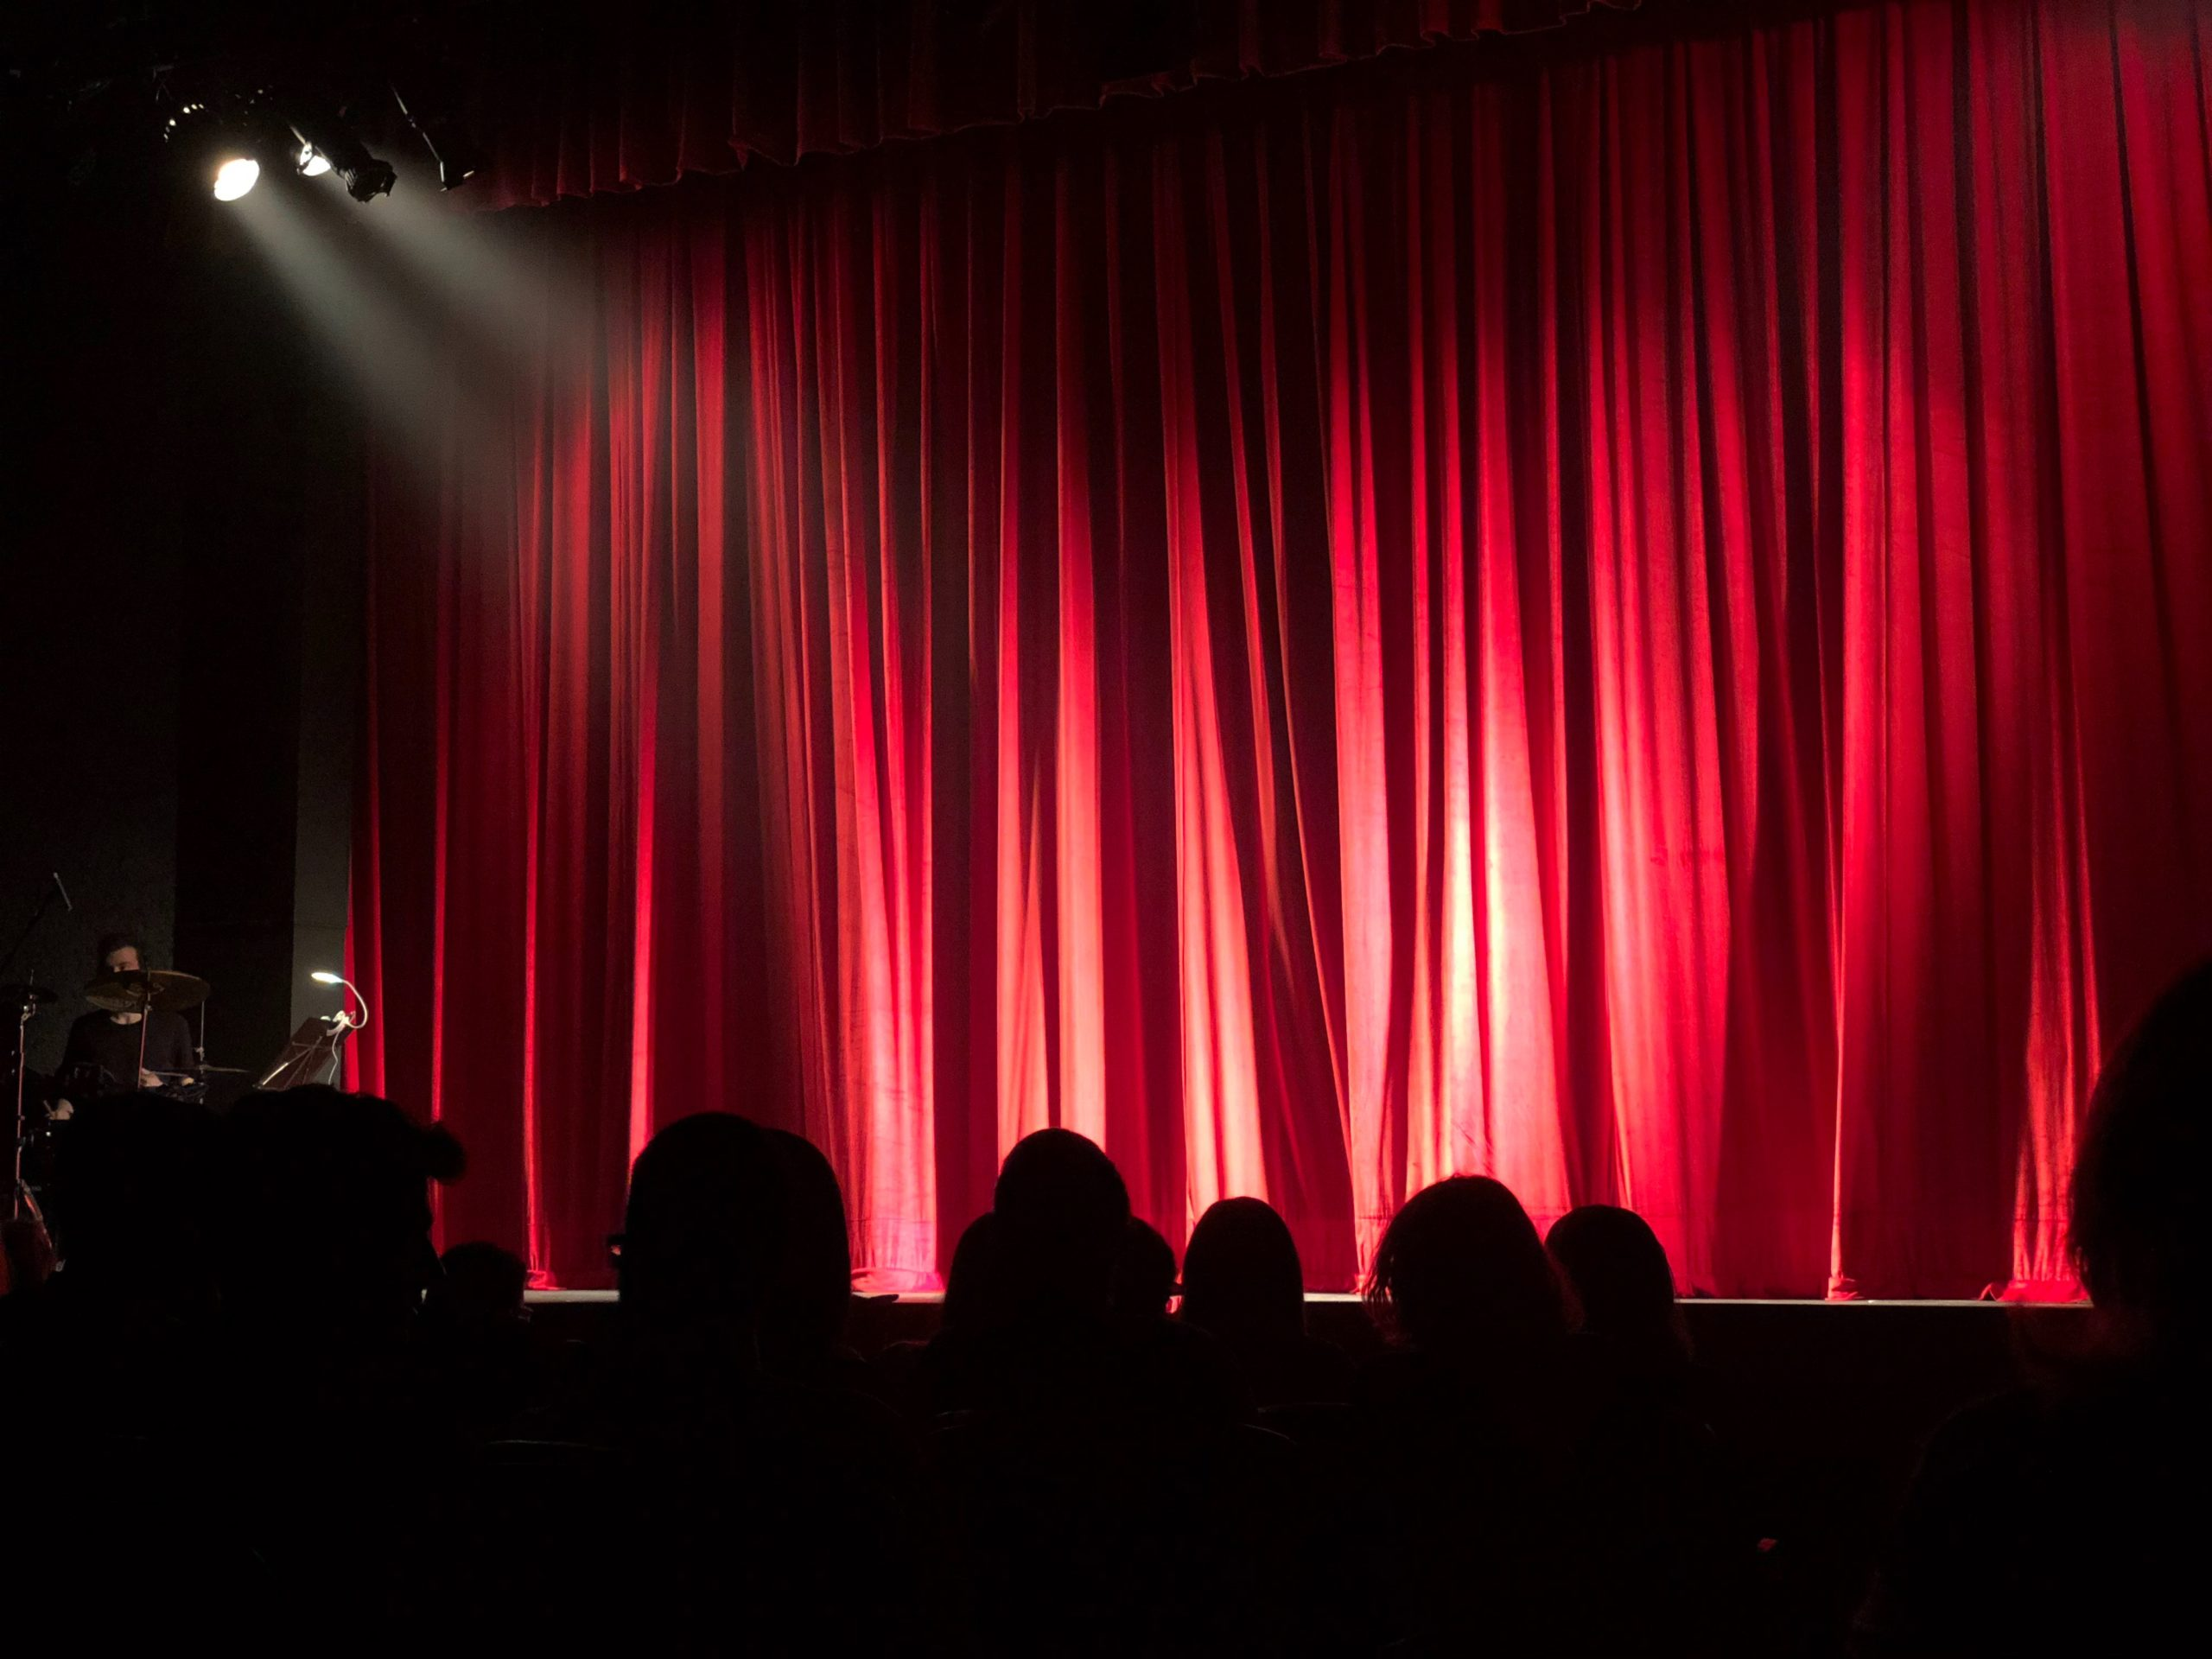 website Background theatre stage red curtains lights